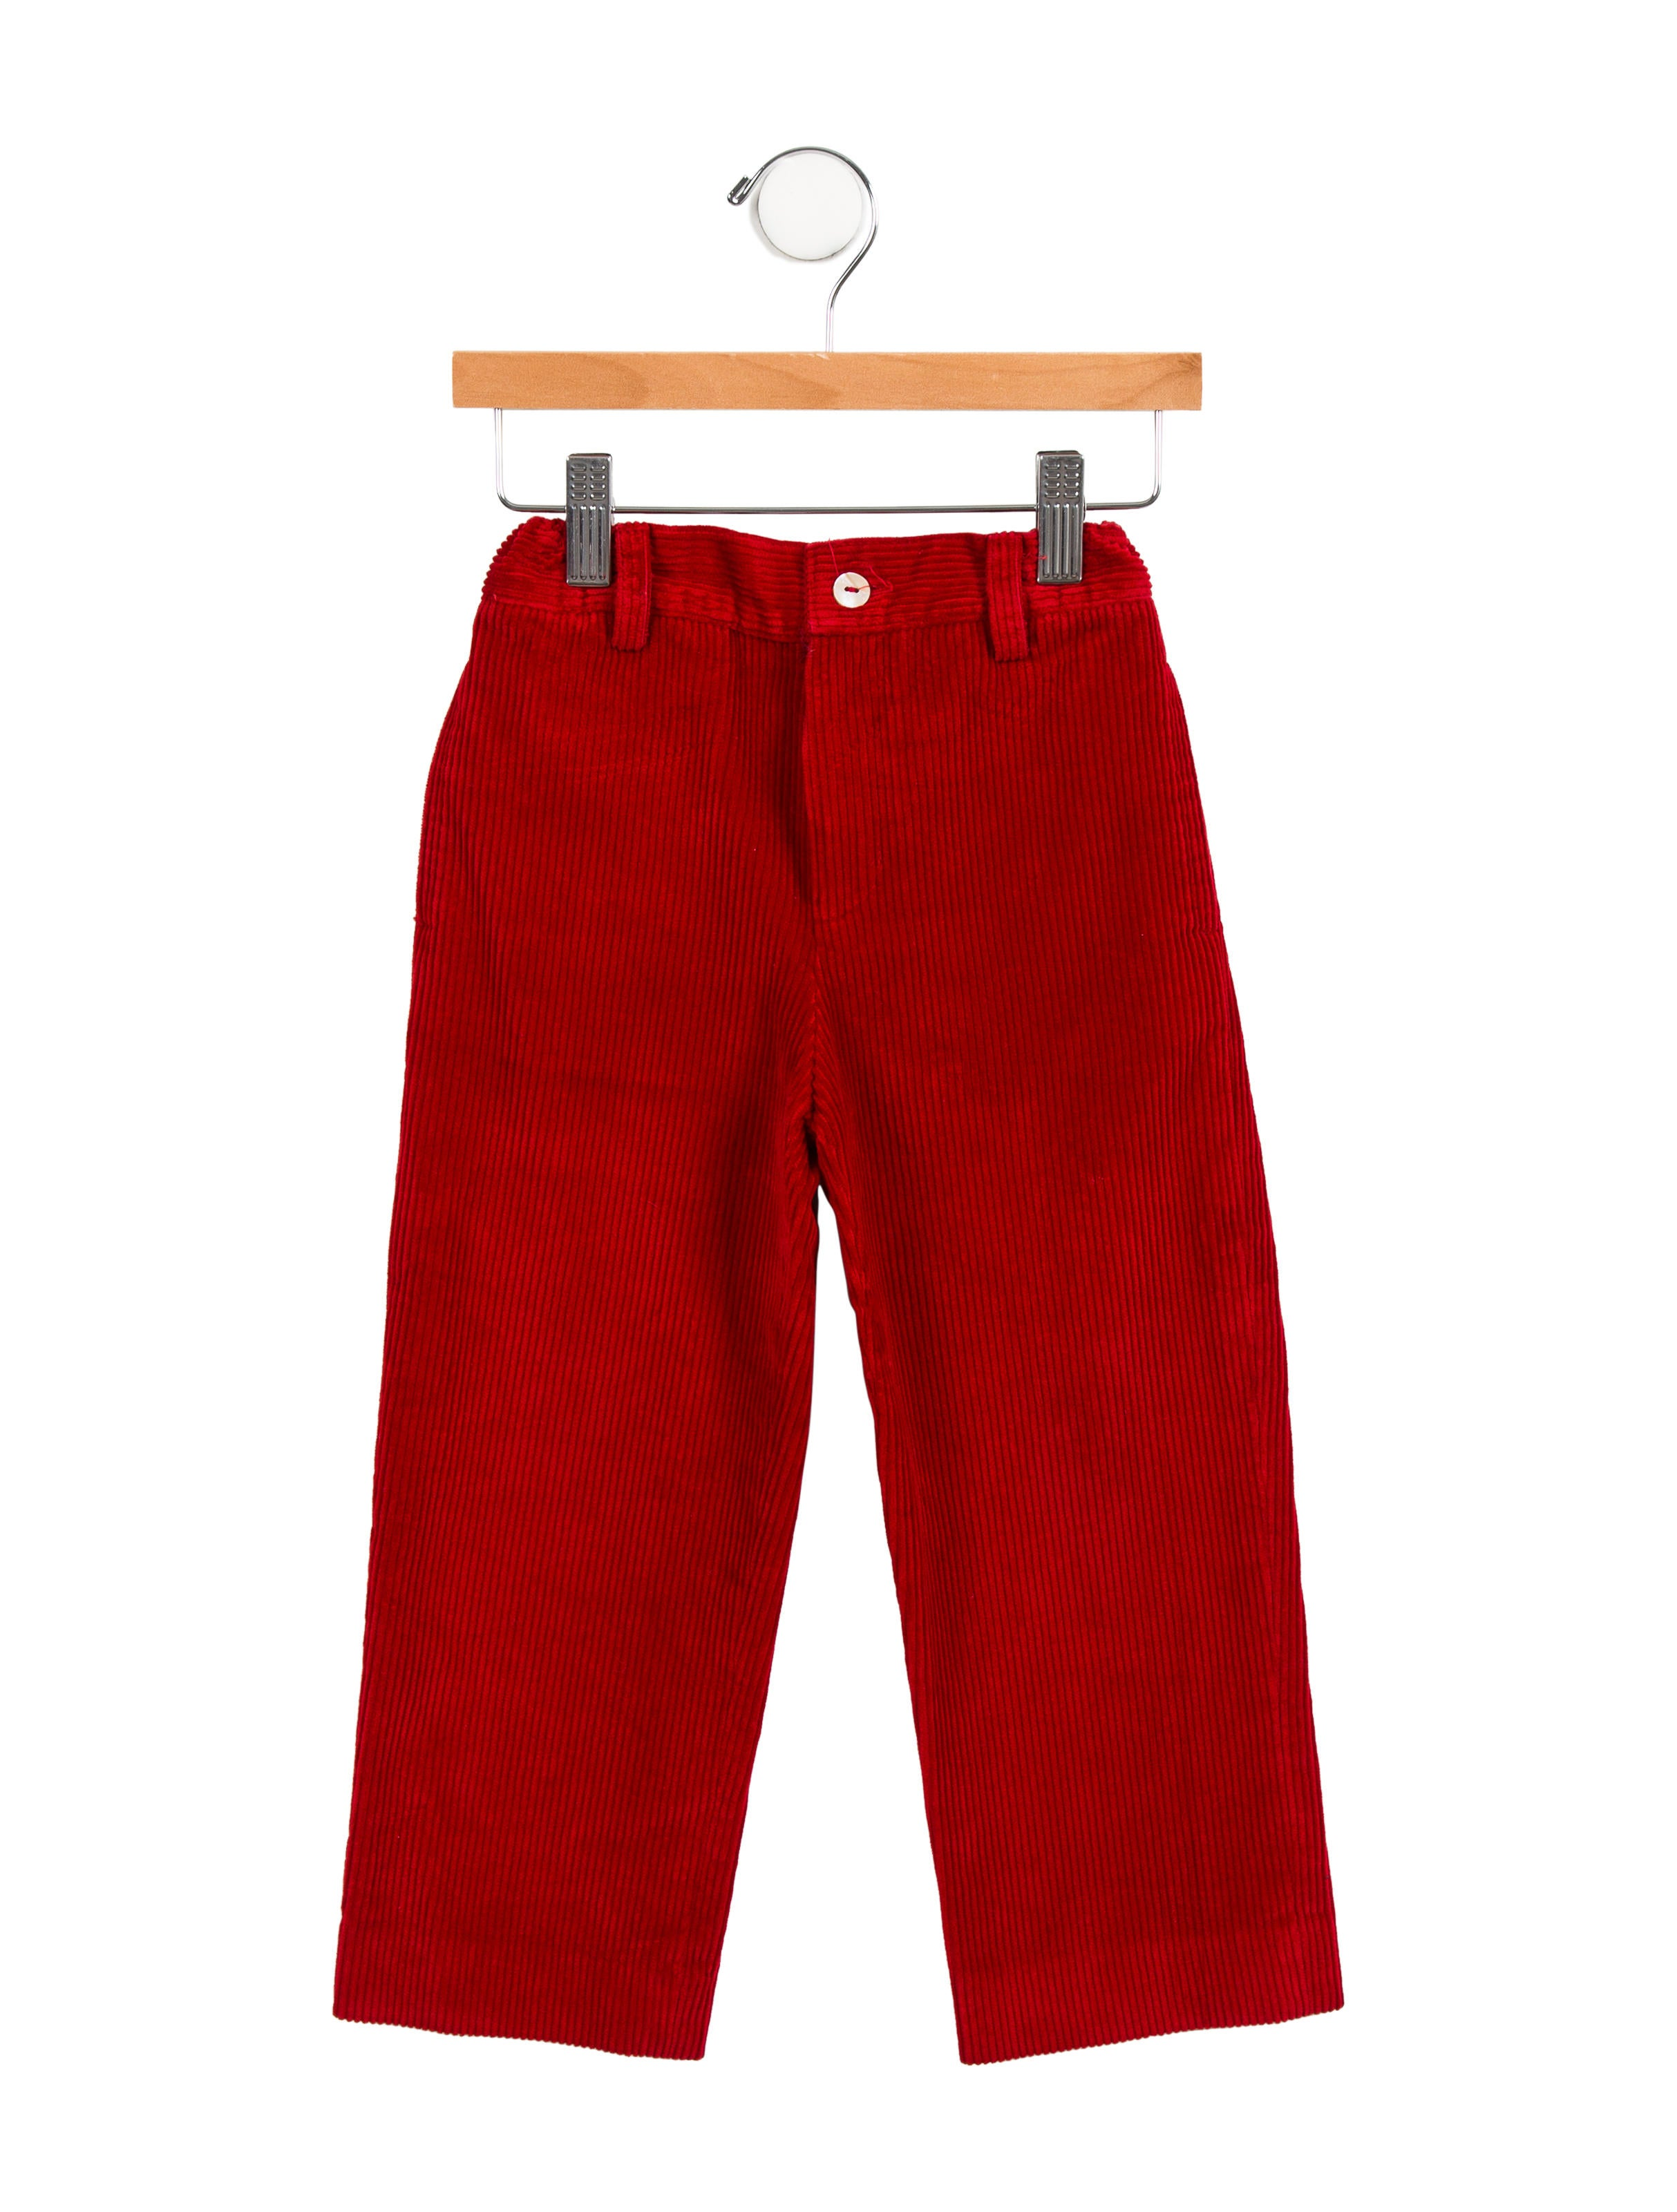 ★ Tucker Tate 'Townsend' Corduroy Pants (Little Boys Big Boys) @ Deal Shop Nordstrom Kids Special Occasions ★ Searching for Best Deals Prices Sale, Tucker Tate 'Townsend' Corduroy Pants (Little Boys Big Boys) Shop New Arrivals & Free Shipping!